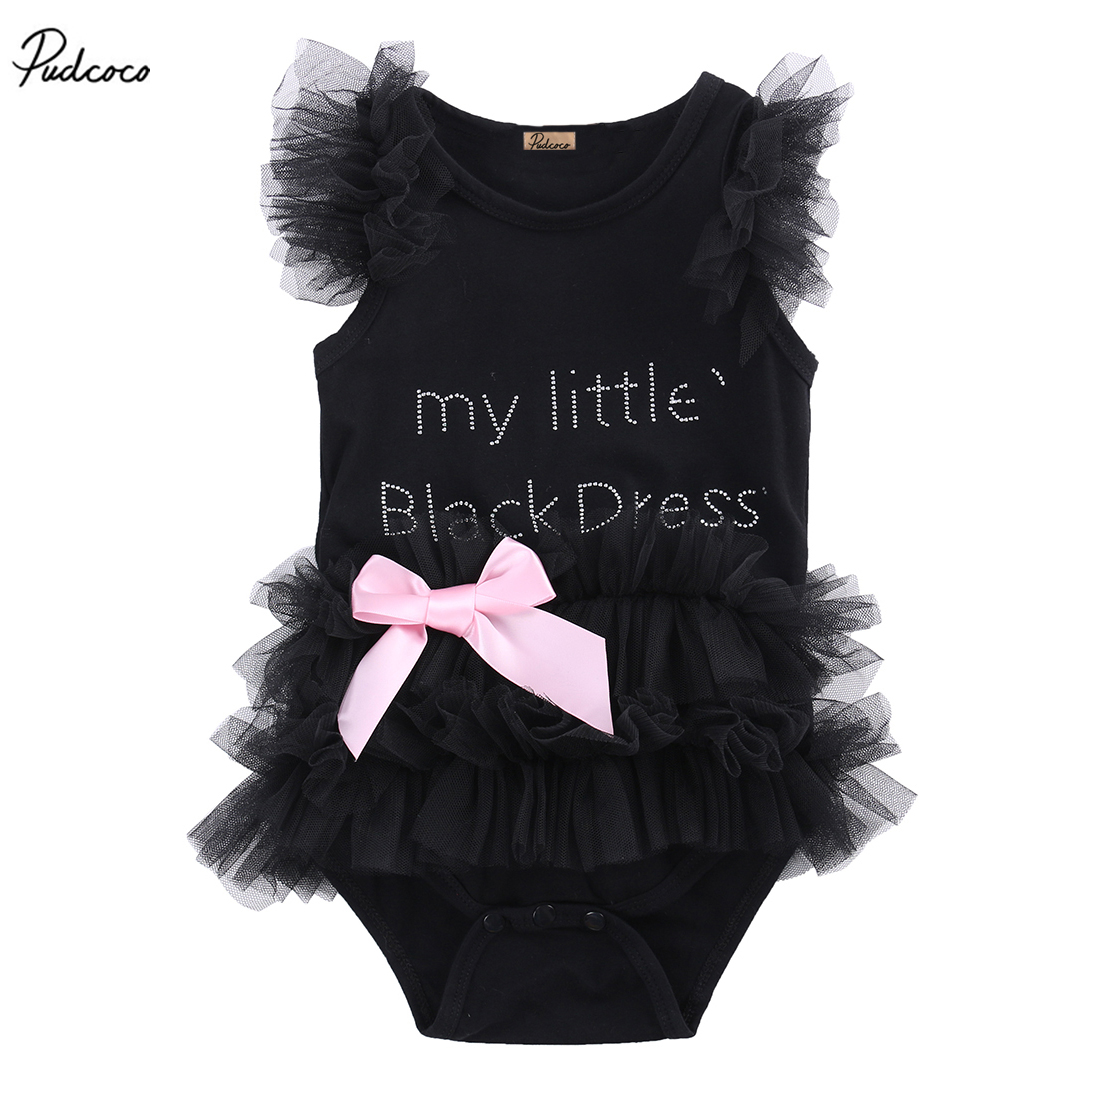 MY LITTER BLACK DRESS Baby Girls Clothes Lace Sleeveless   Romper   Ruffle Bow tie 2017 New Summer Jumpsuit Outfits One-pieces